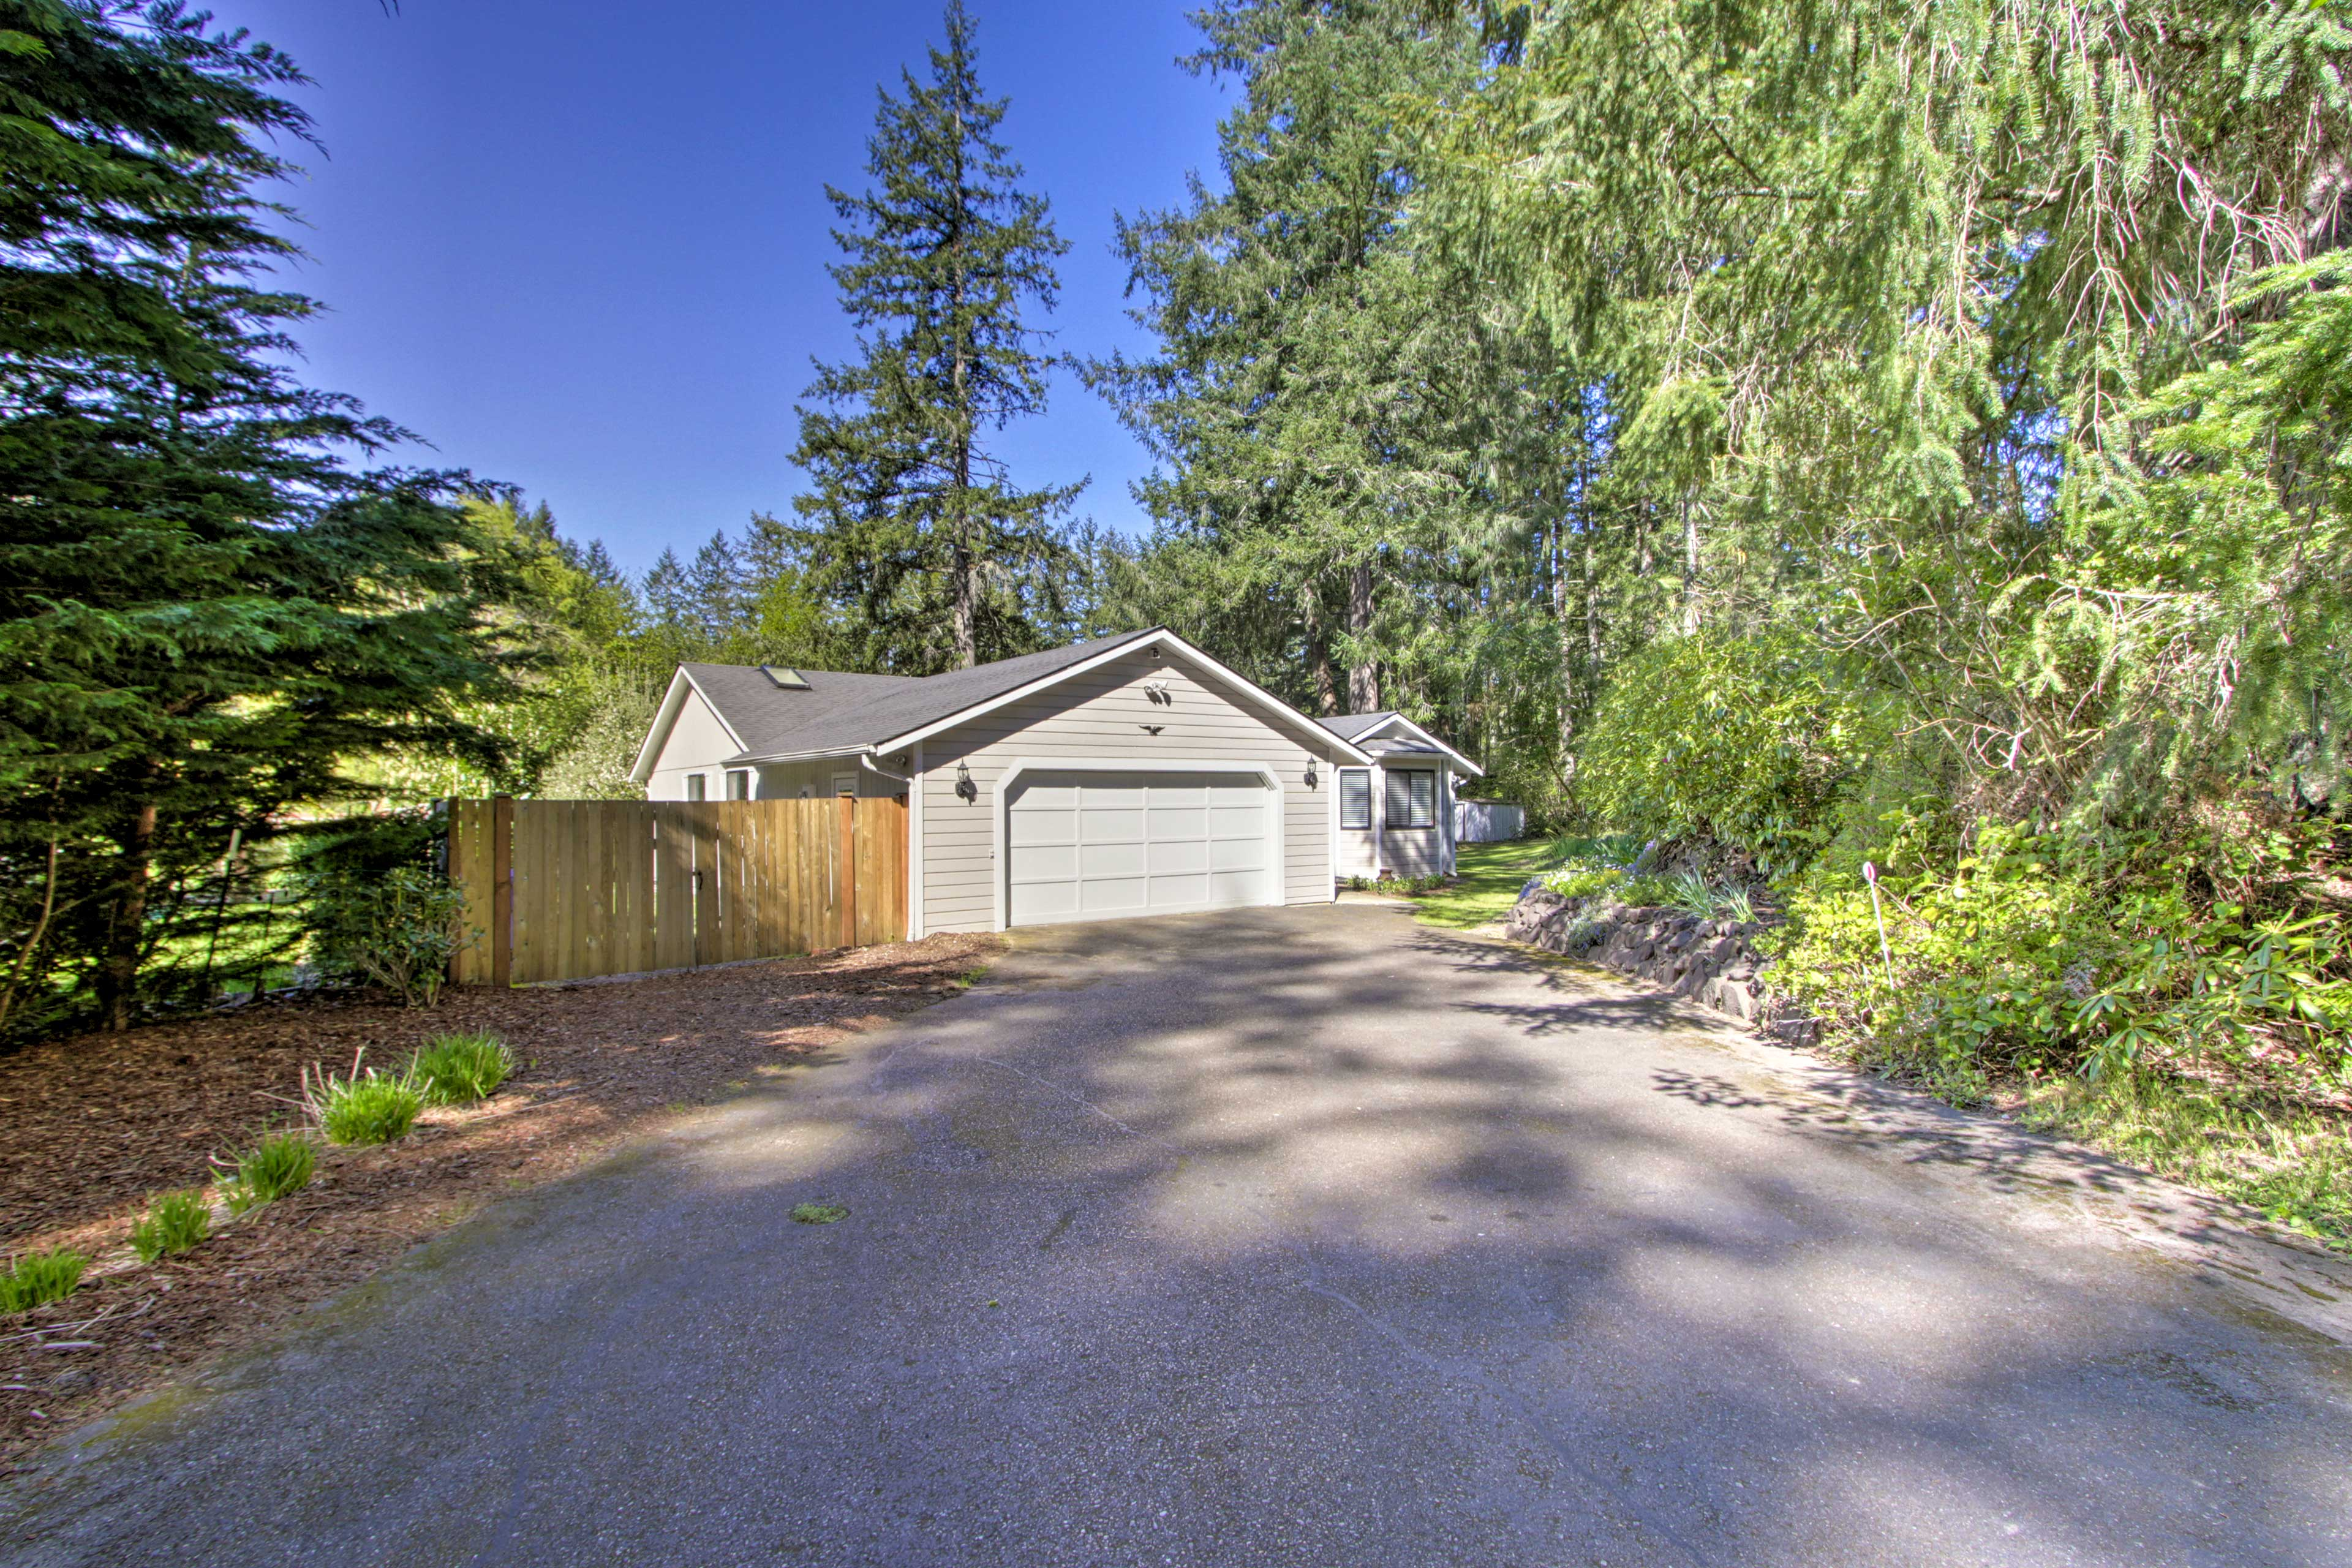 You'll also find parking for 4 vehicles at this Olympia home.